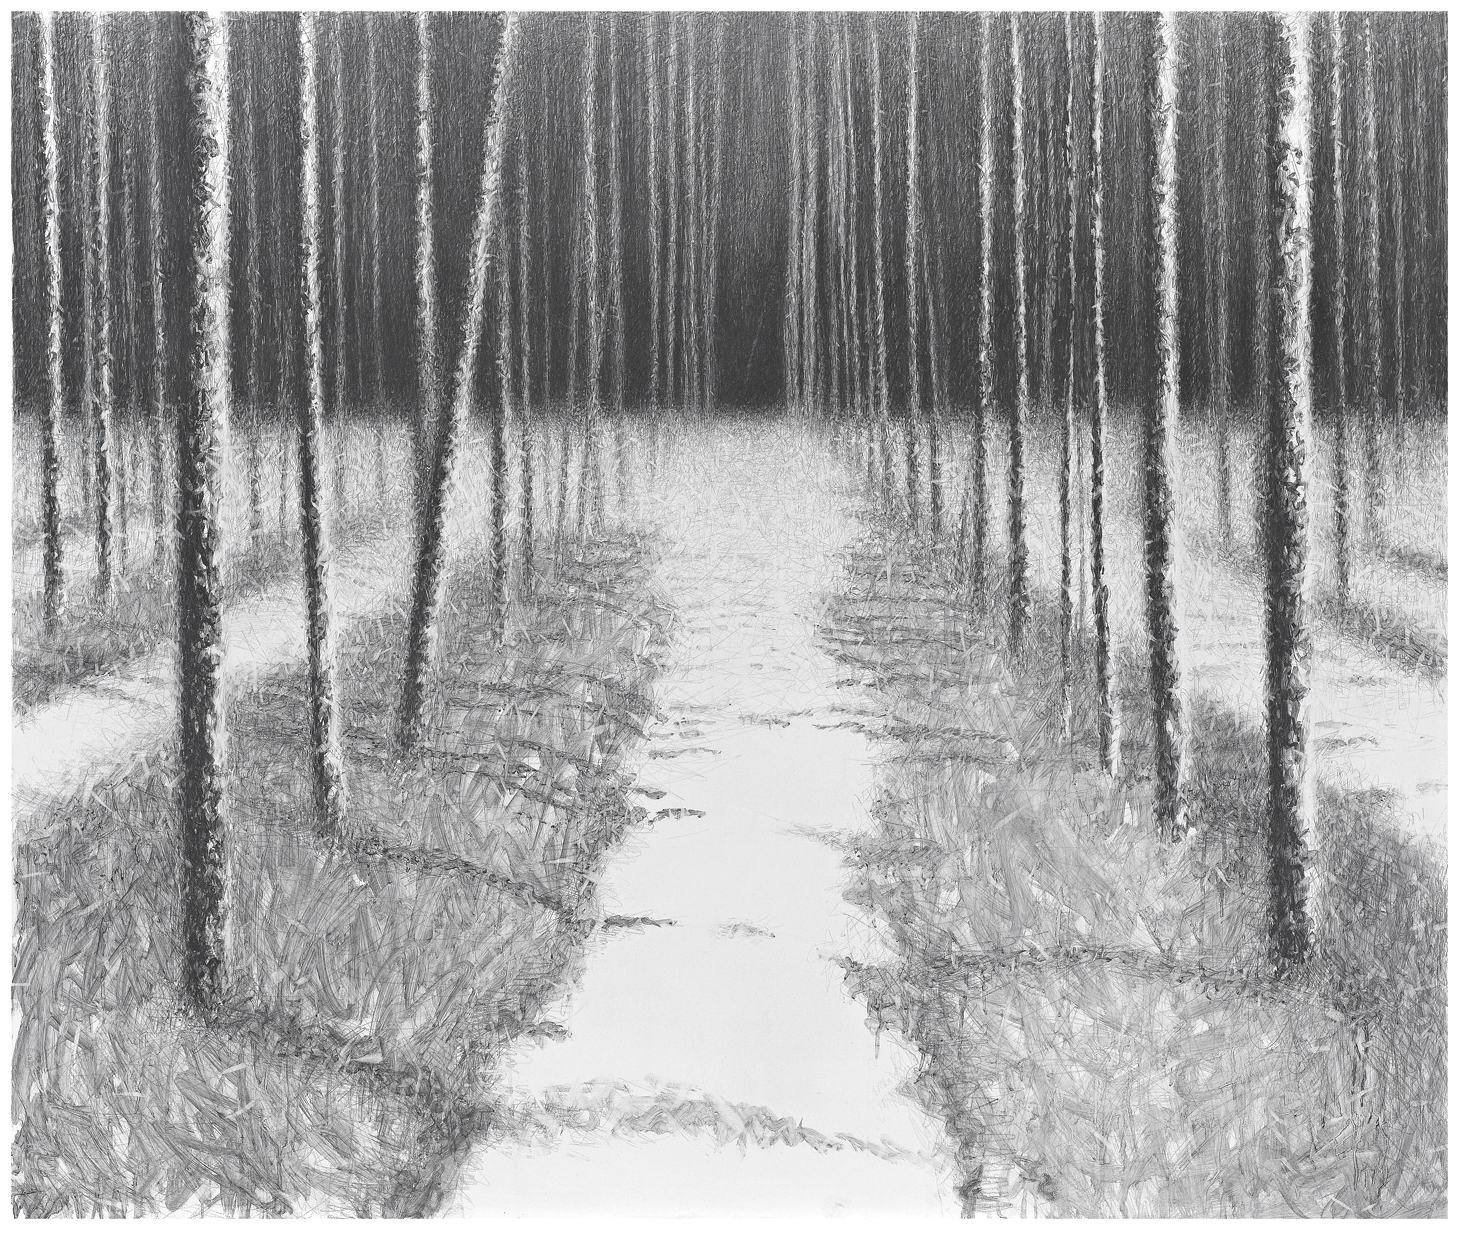 2010, graphite on canvas, 146x172 cm.